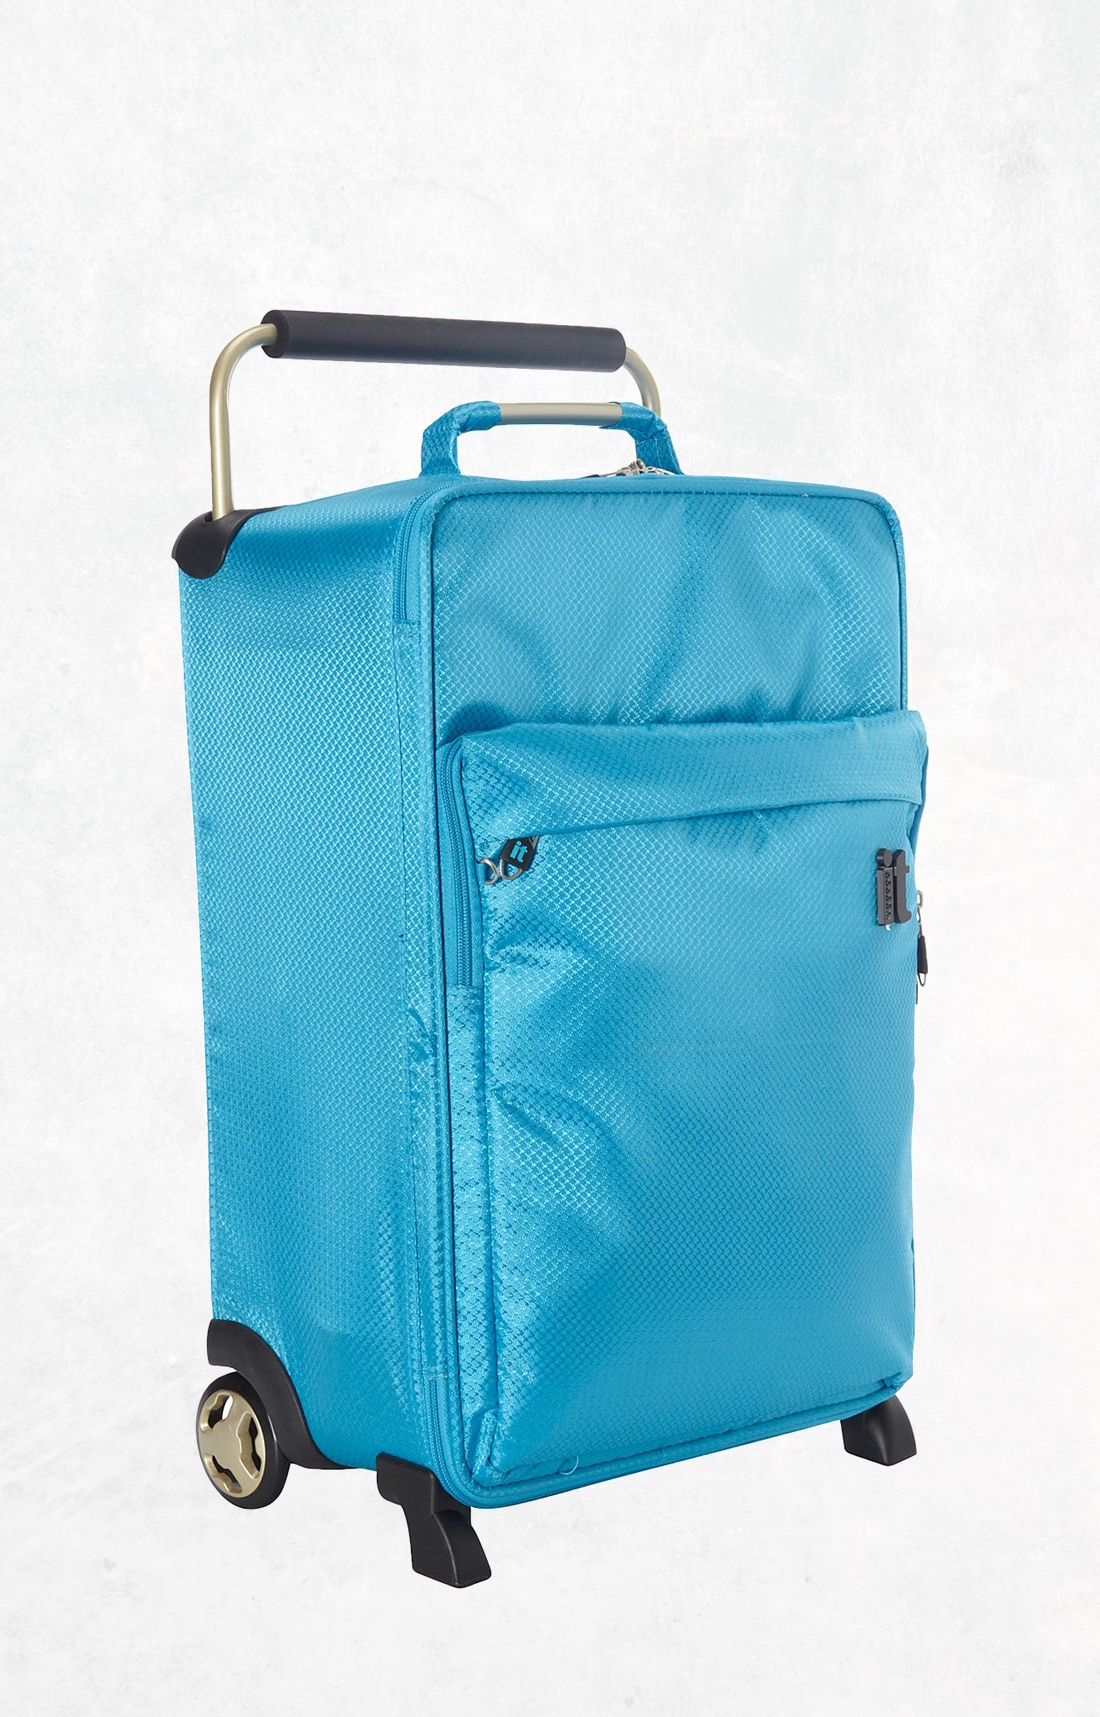 Cheap Luggage: 8 Best Suitcases Under $50 - Thither